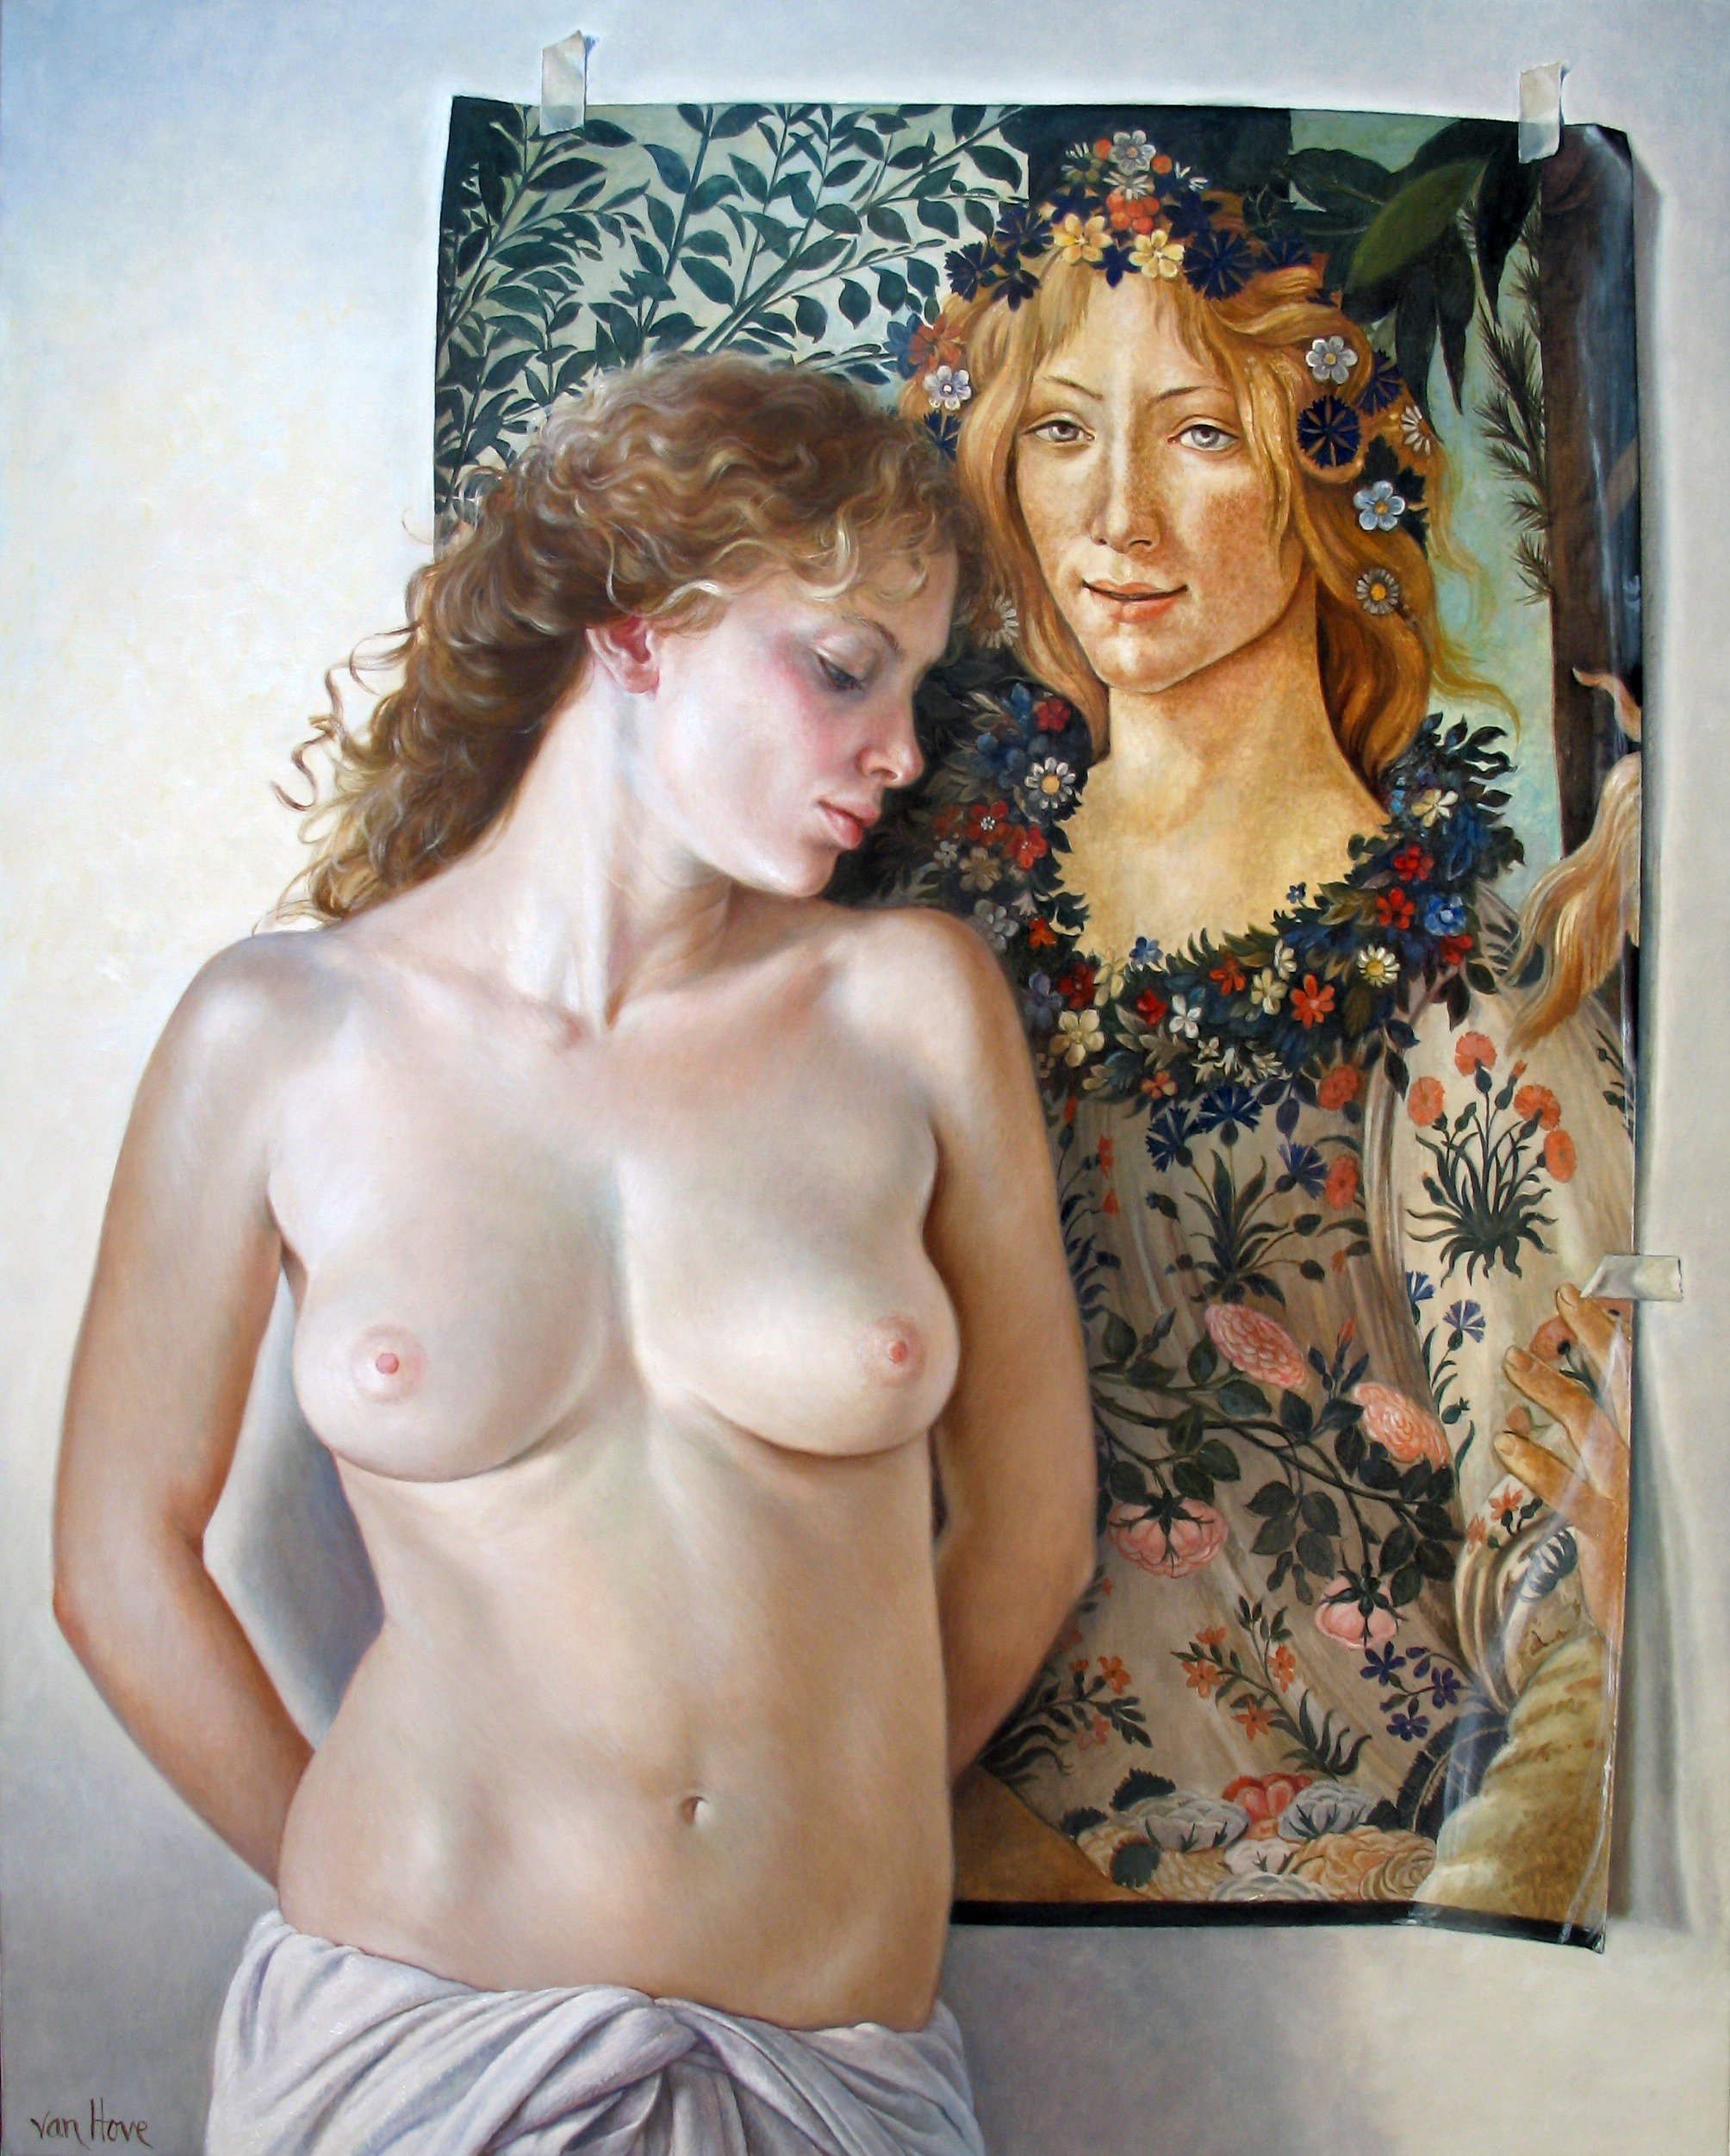 Figurative painting by Francine Van Hove